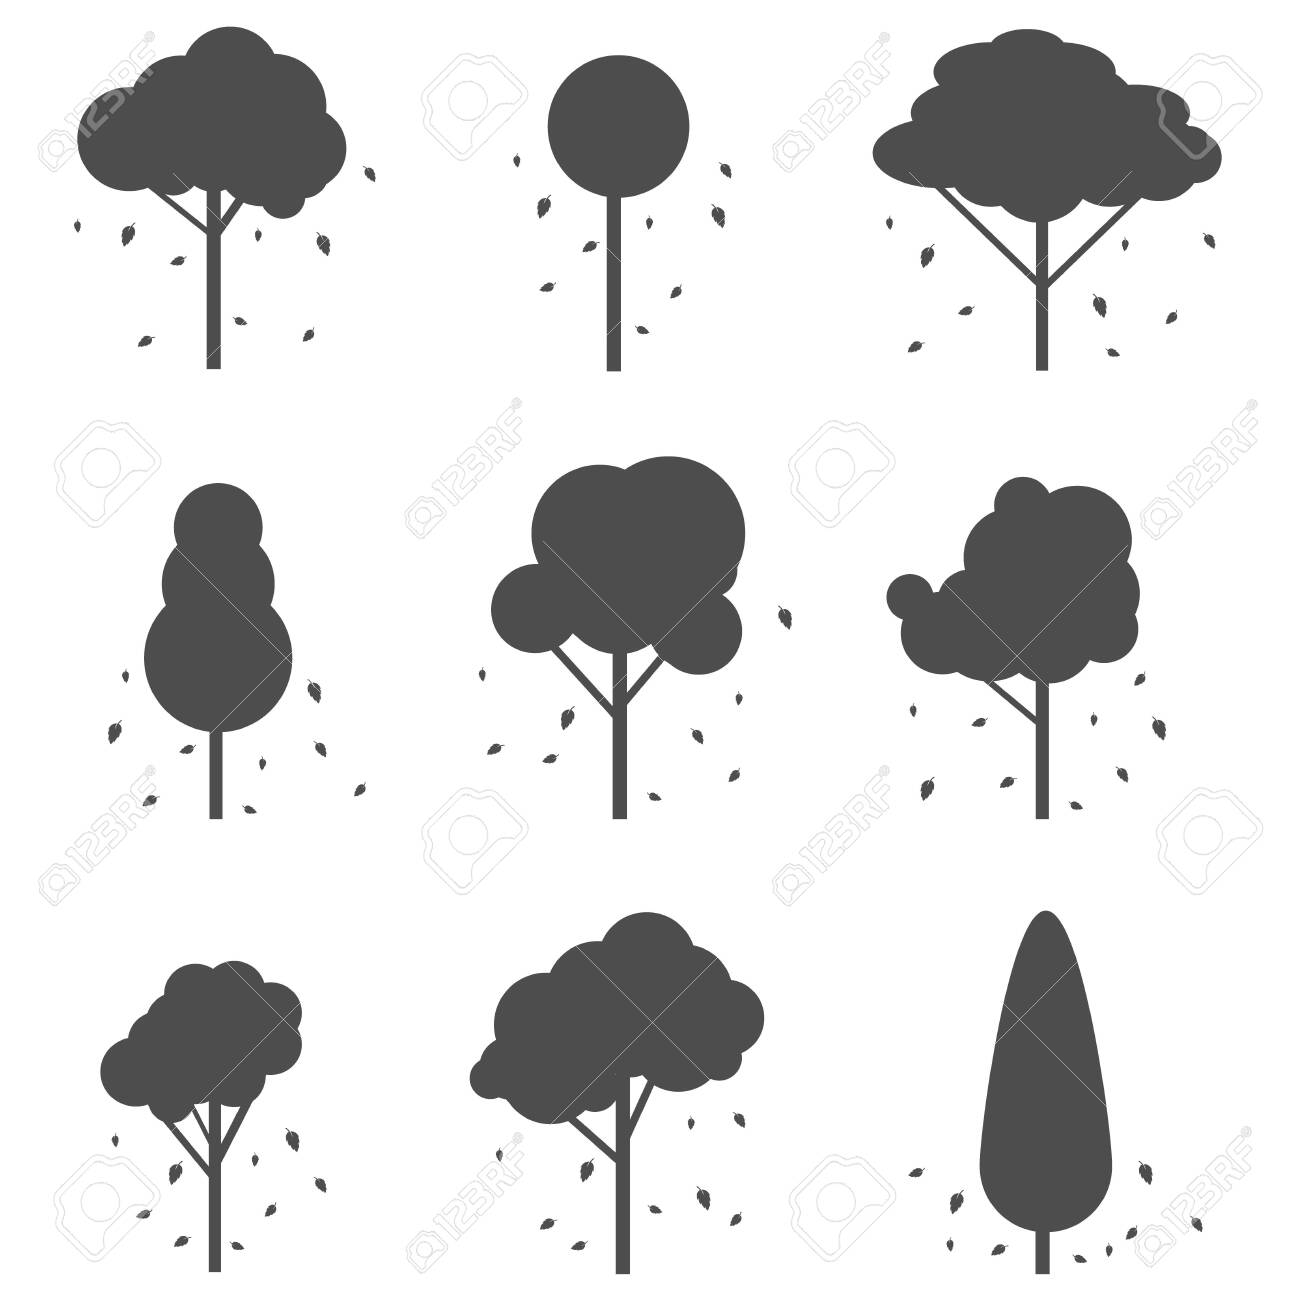 Silhouettes of trees with leaves. Silhouettes of trees with fallen leaves isolated on a white background. Vector illustration. Vector. - 151123629